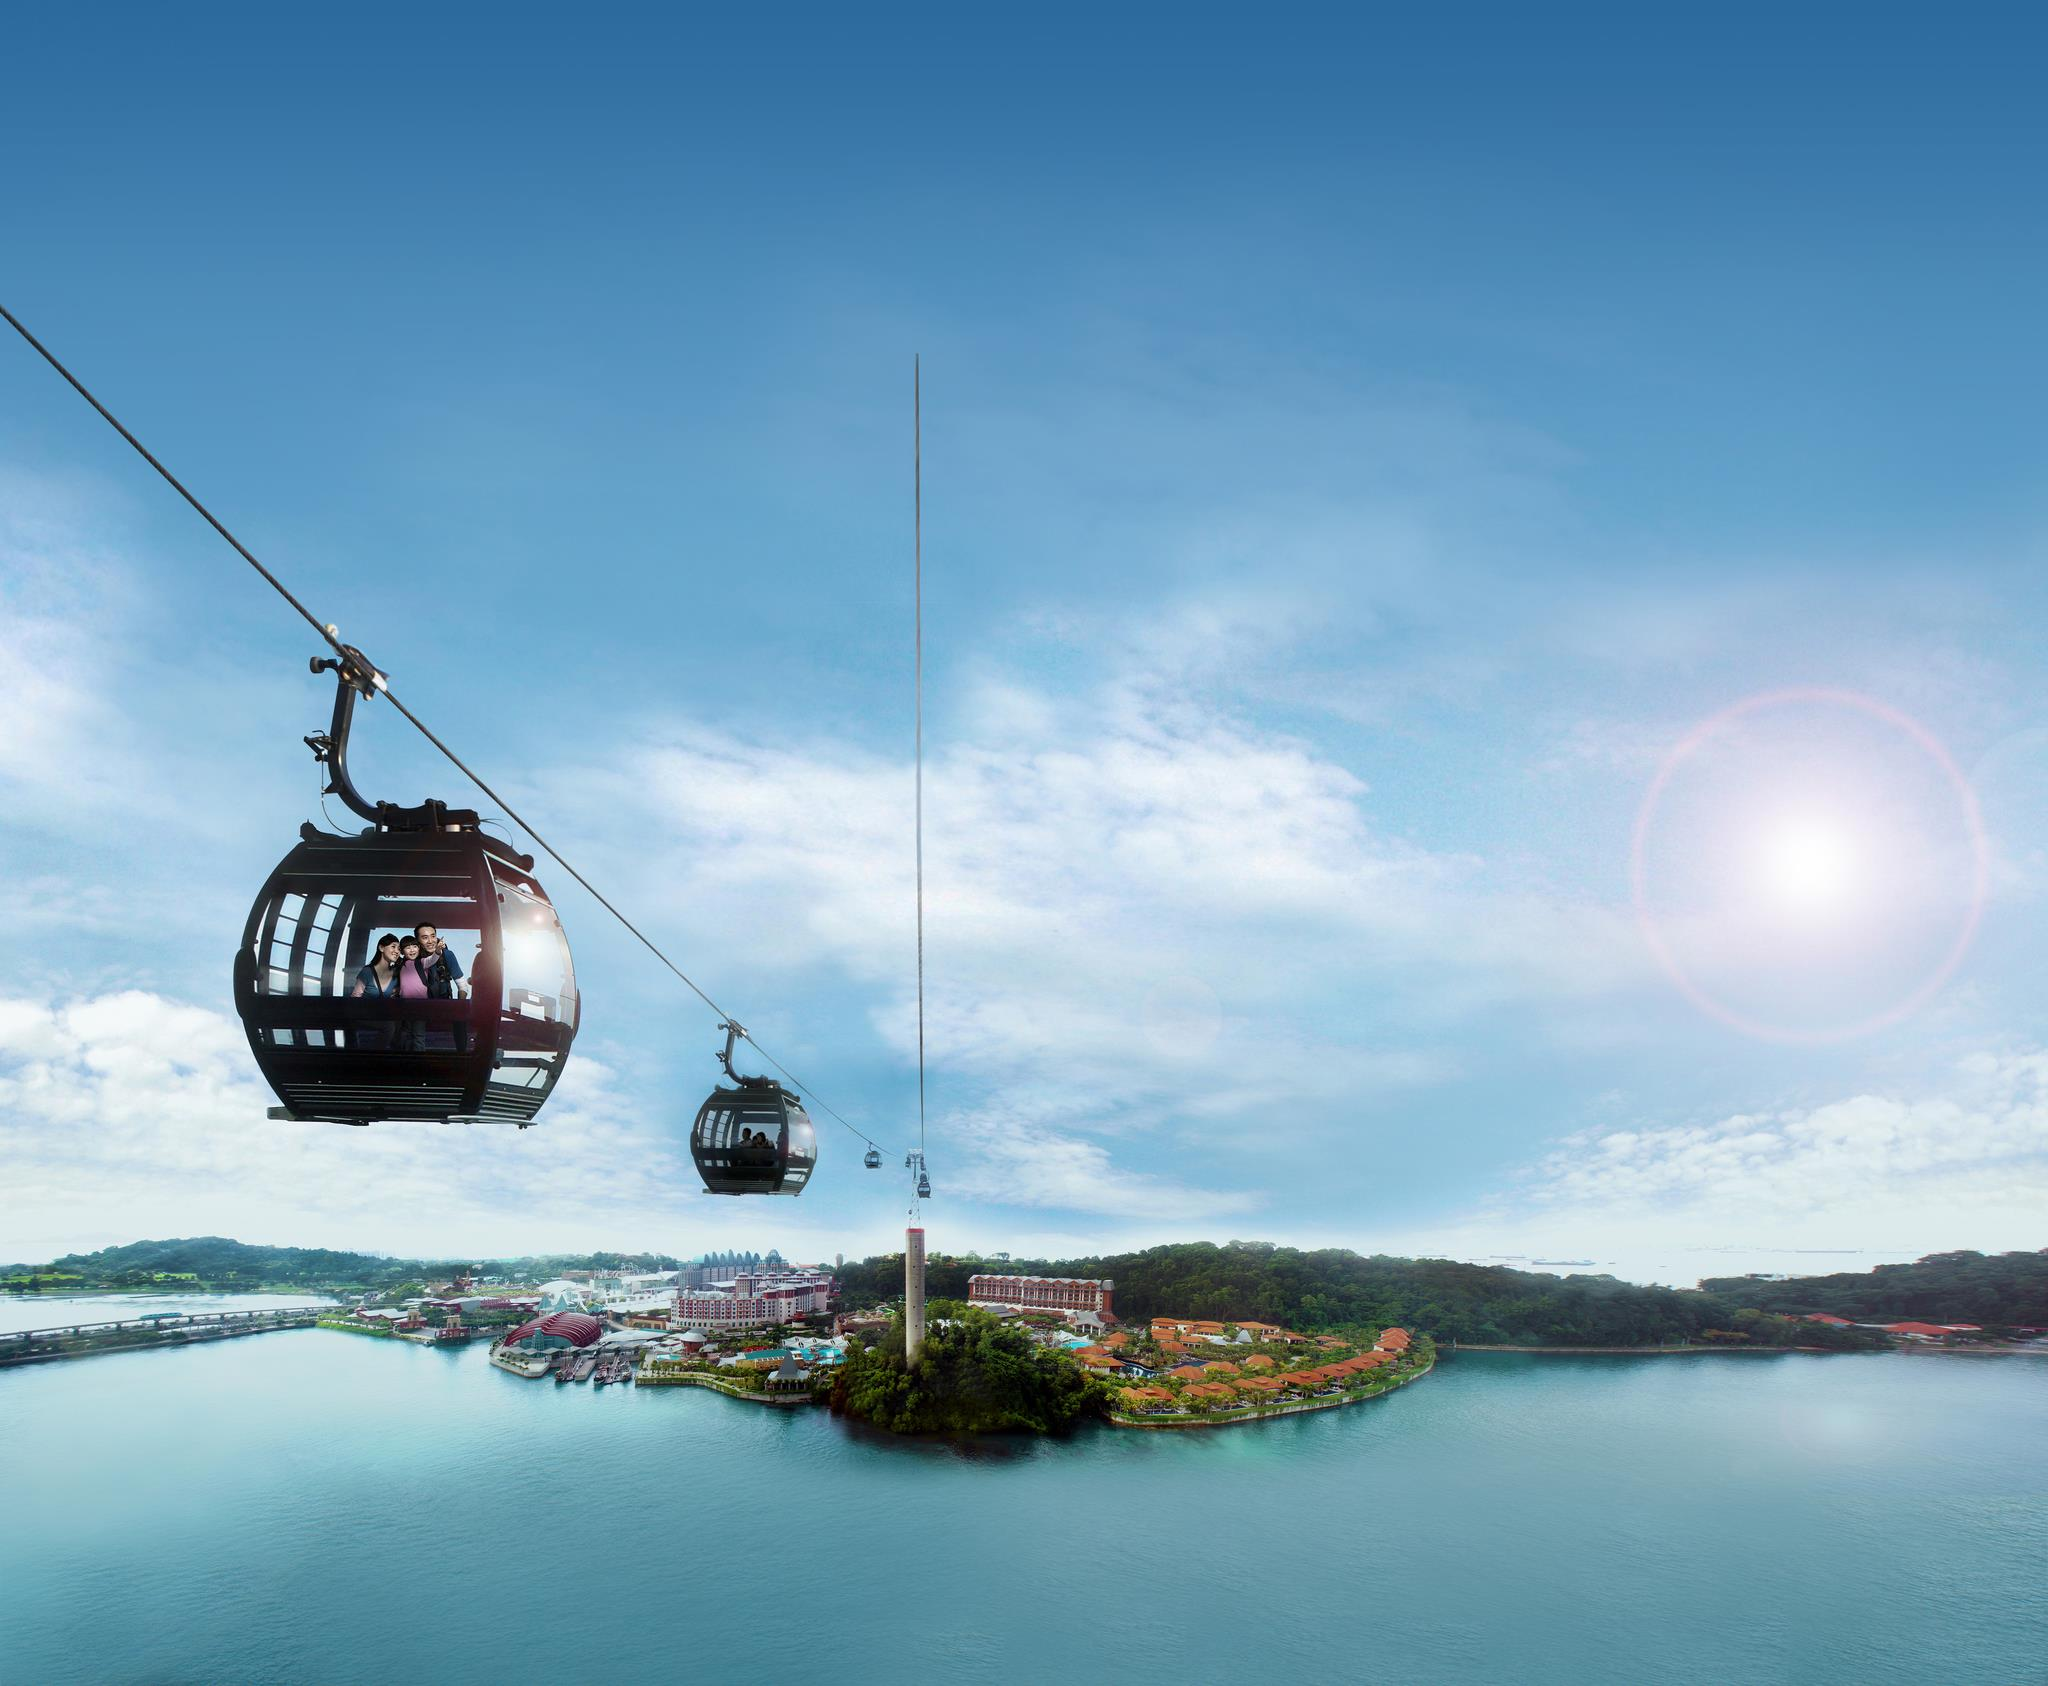 sky-dining-experience-on-the-singapore-cable-car-2